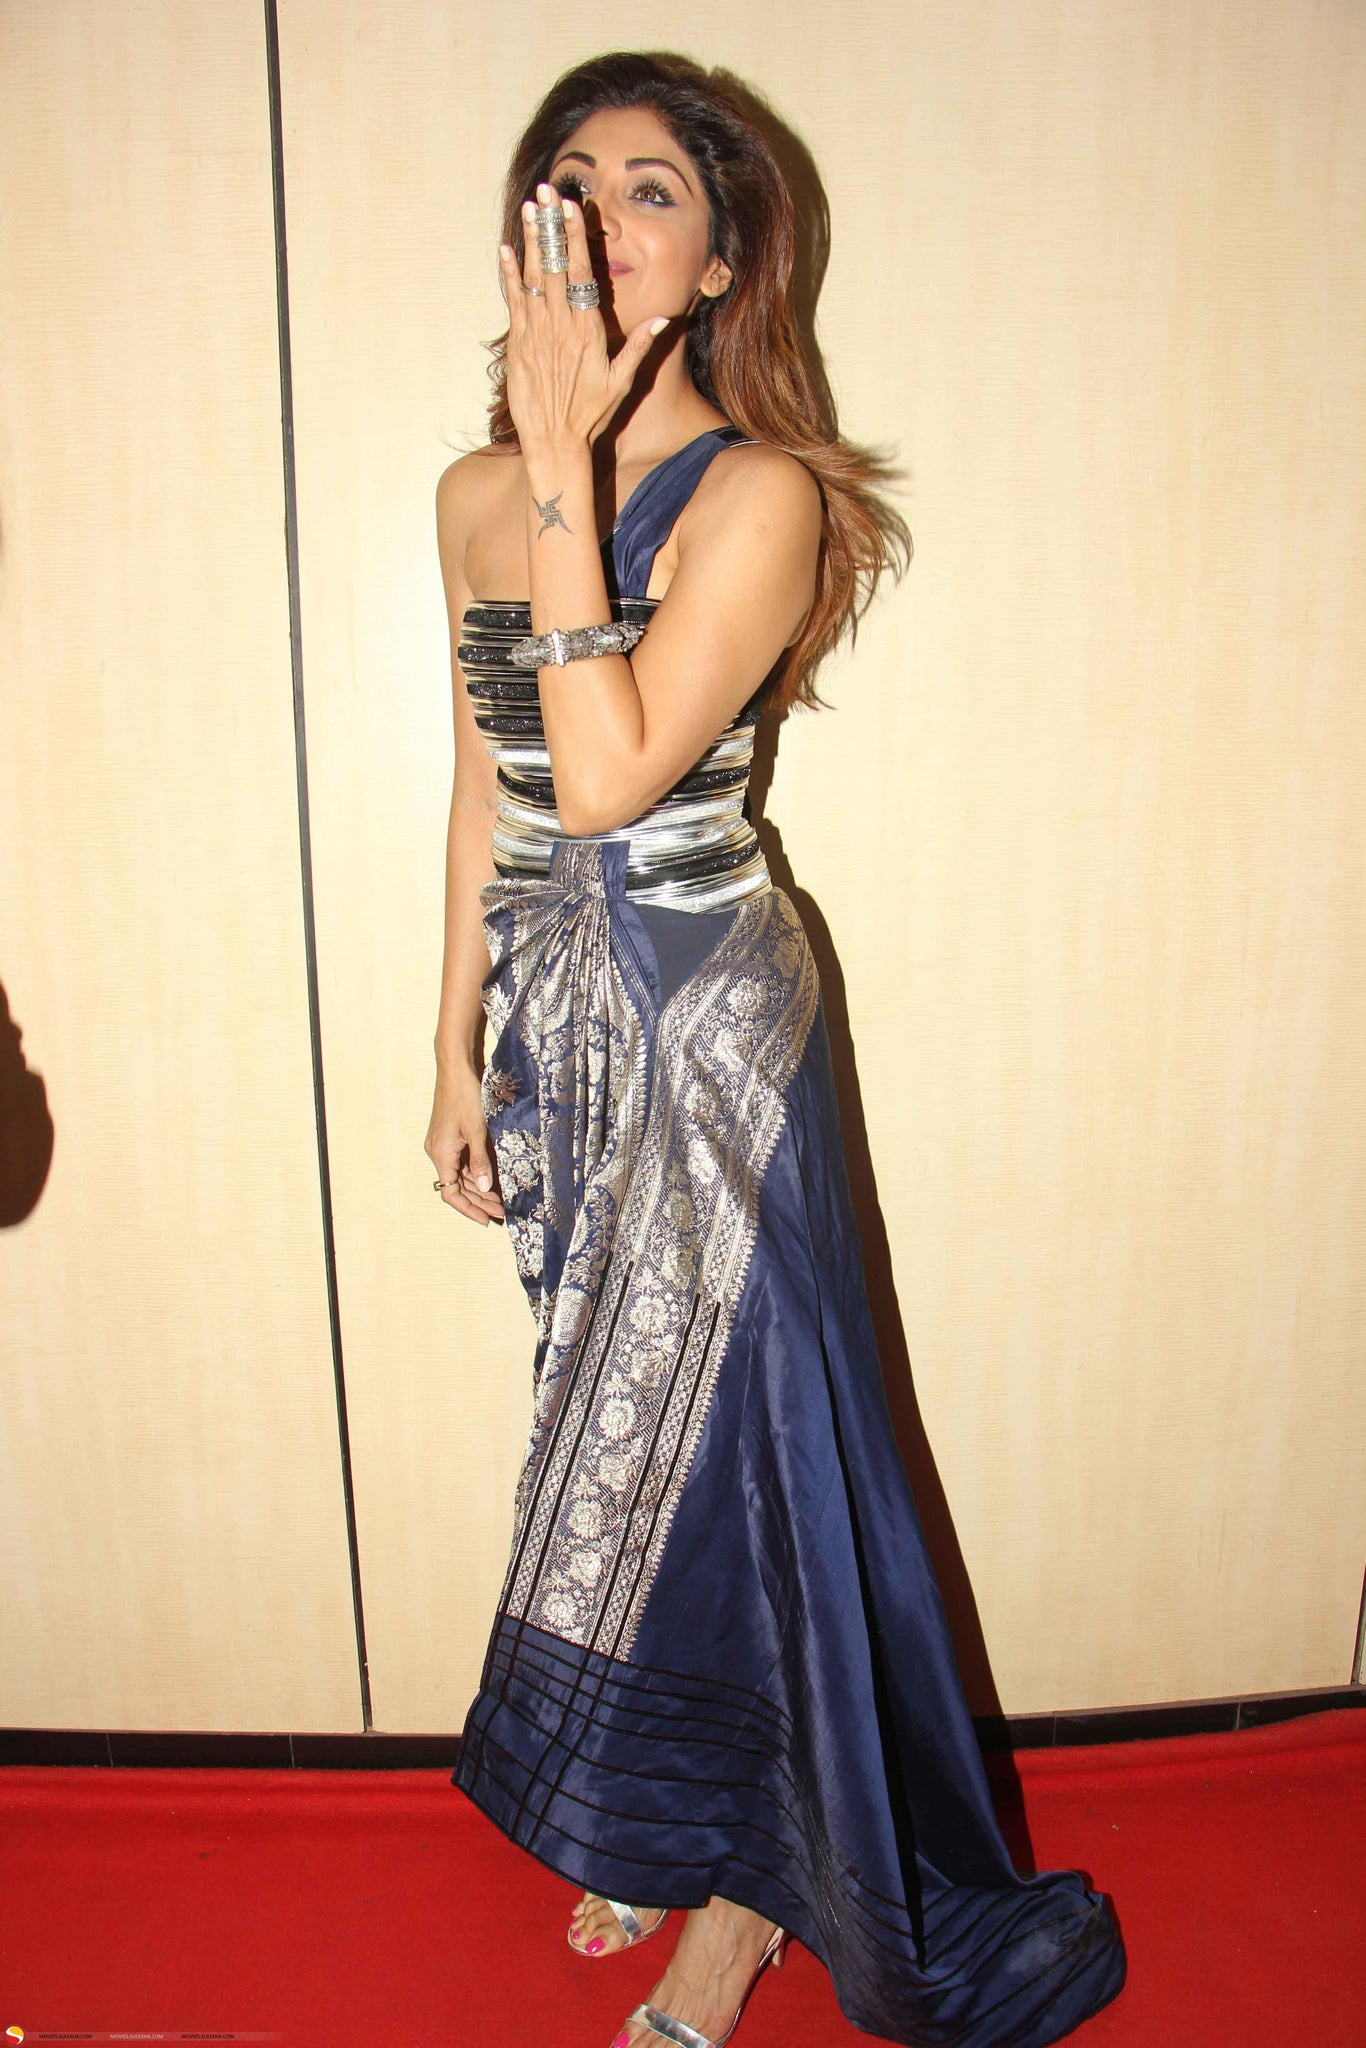 Shilpa Shetty Looked Classy In A Saree Gown By Amit Aggarwal At The Dada Saheb Phal